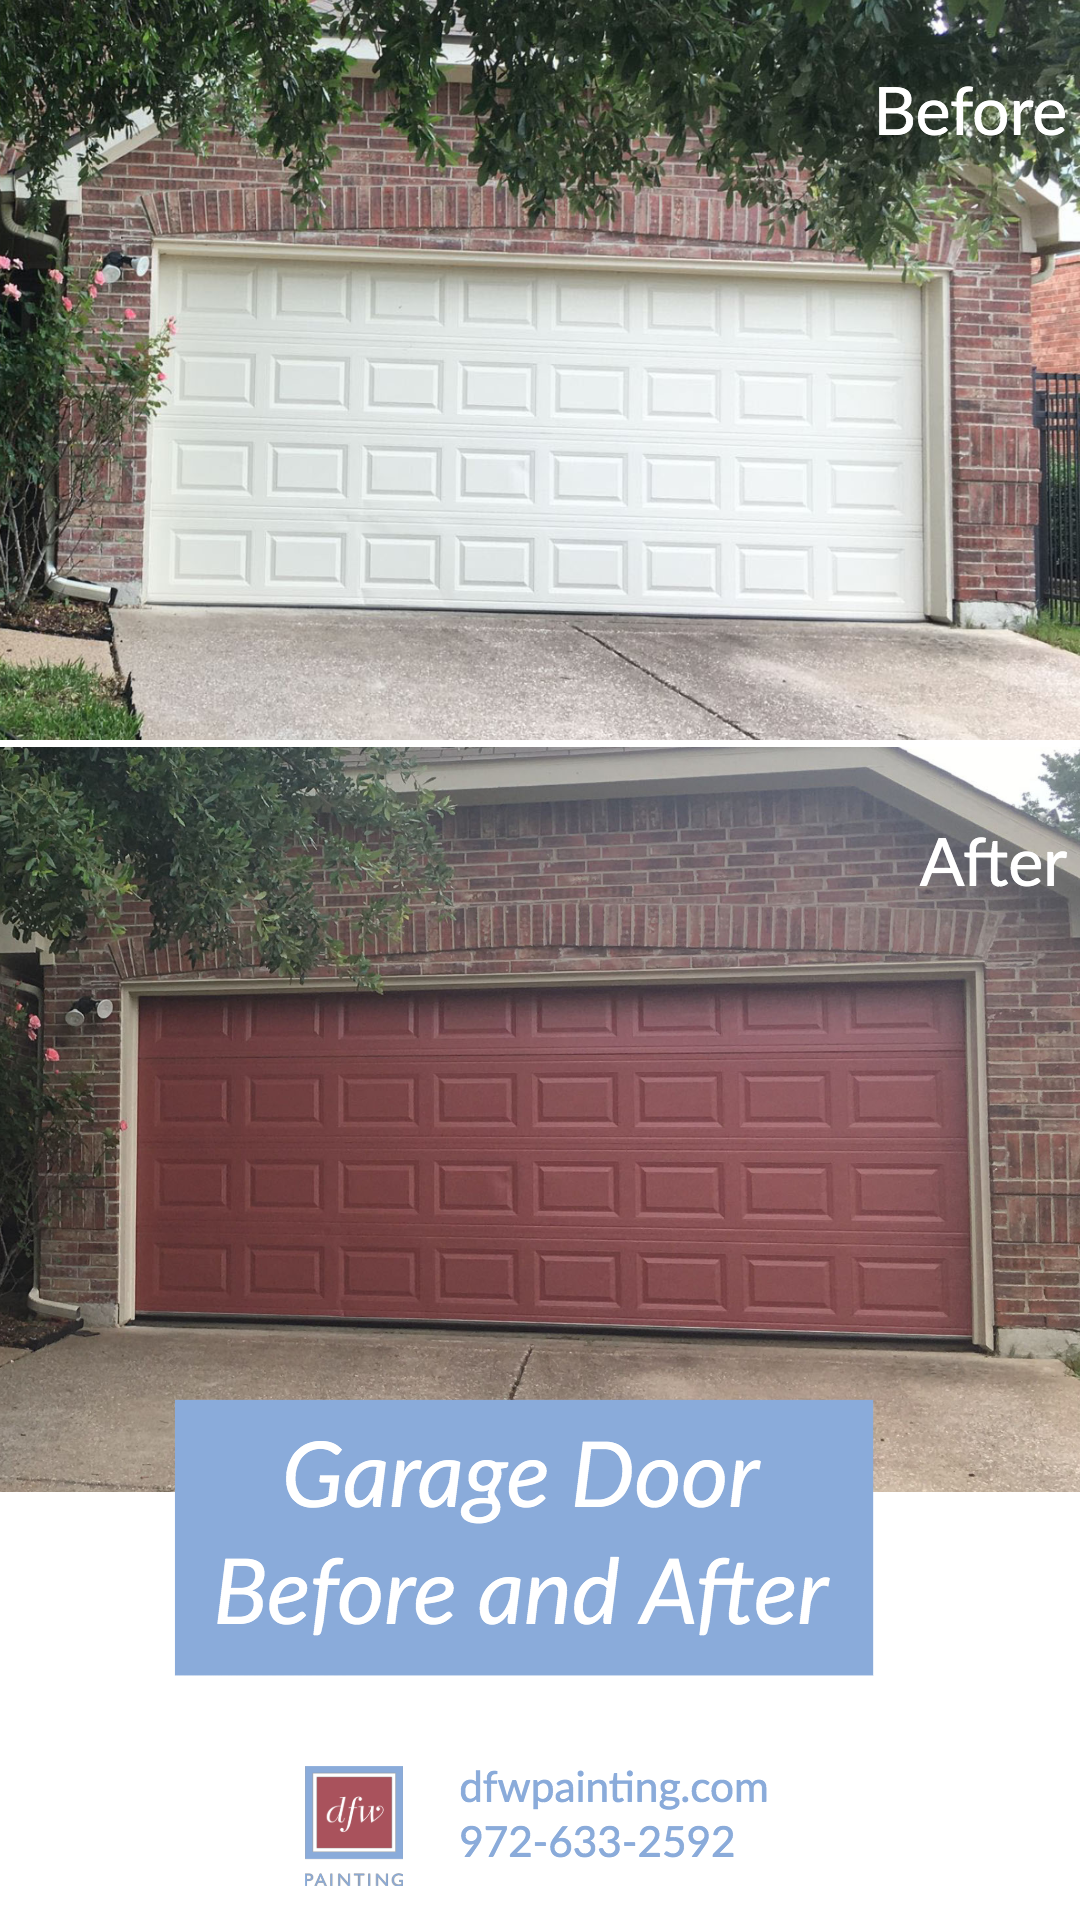 Updating The Color Of Your Garage Door Can Be As Easy As Adding A